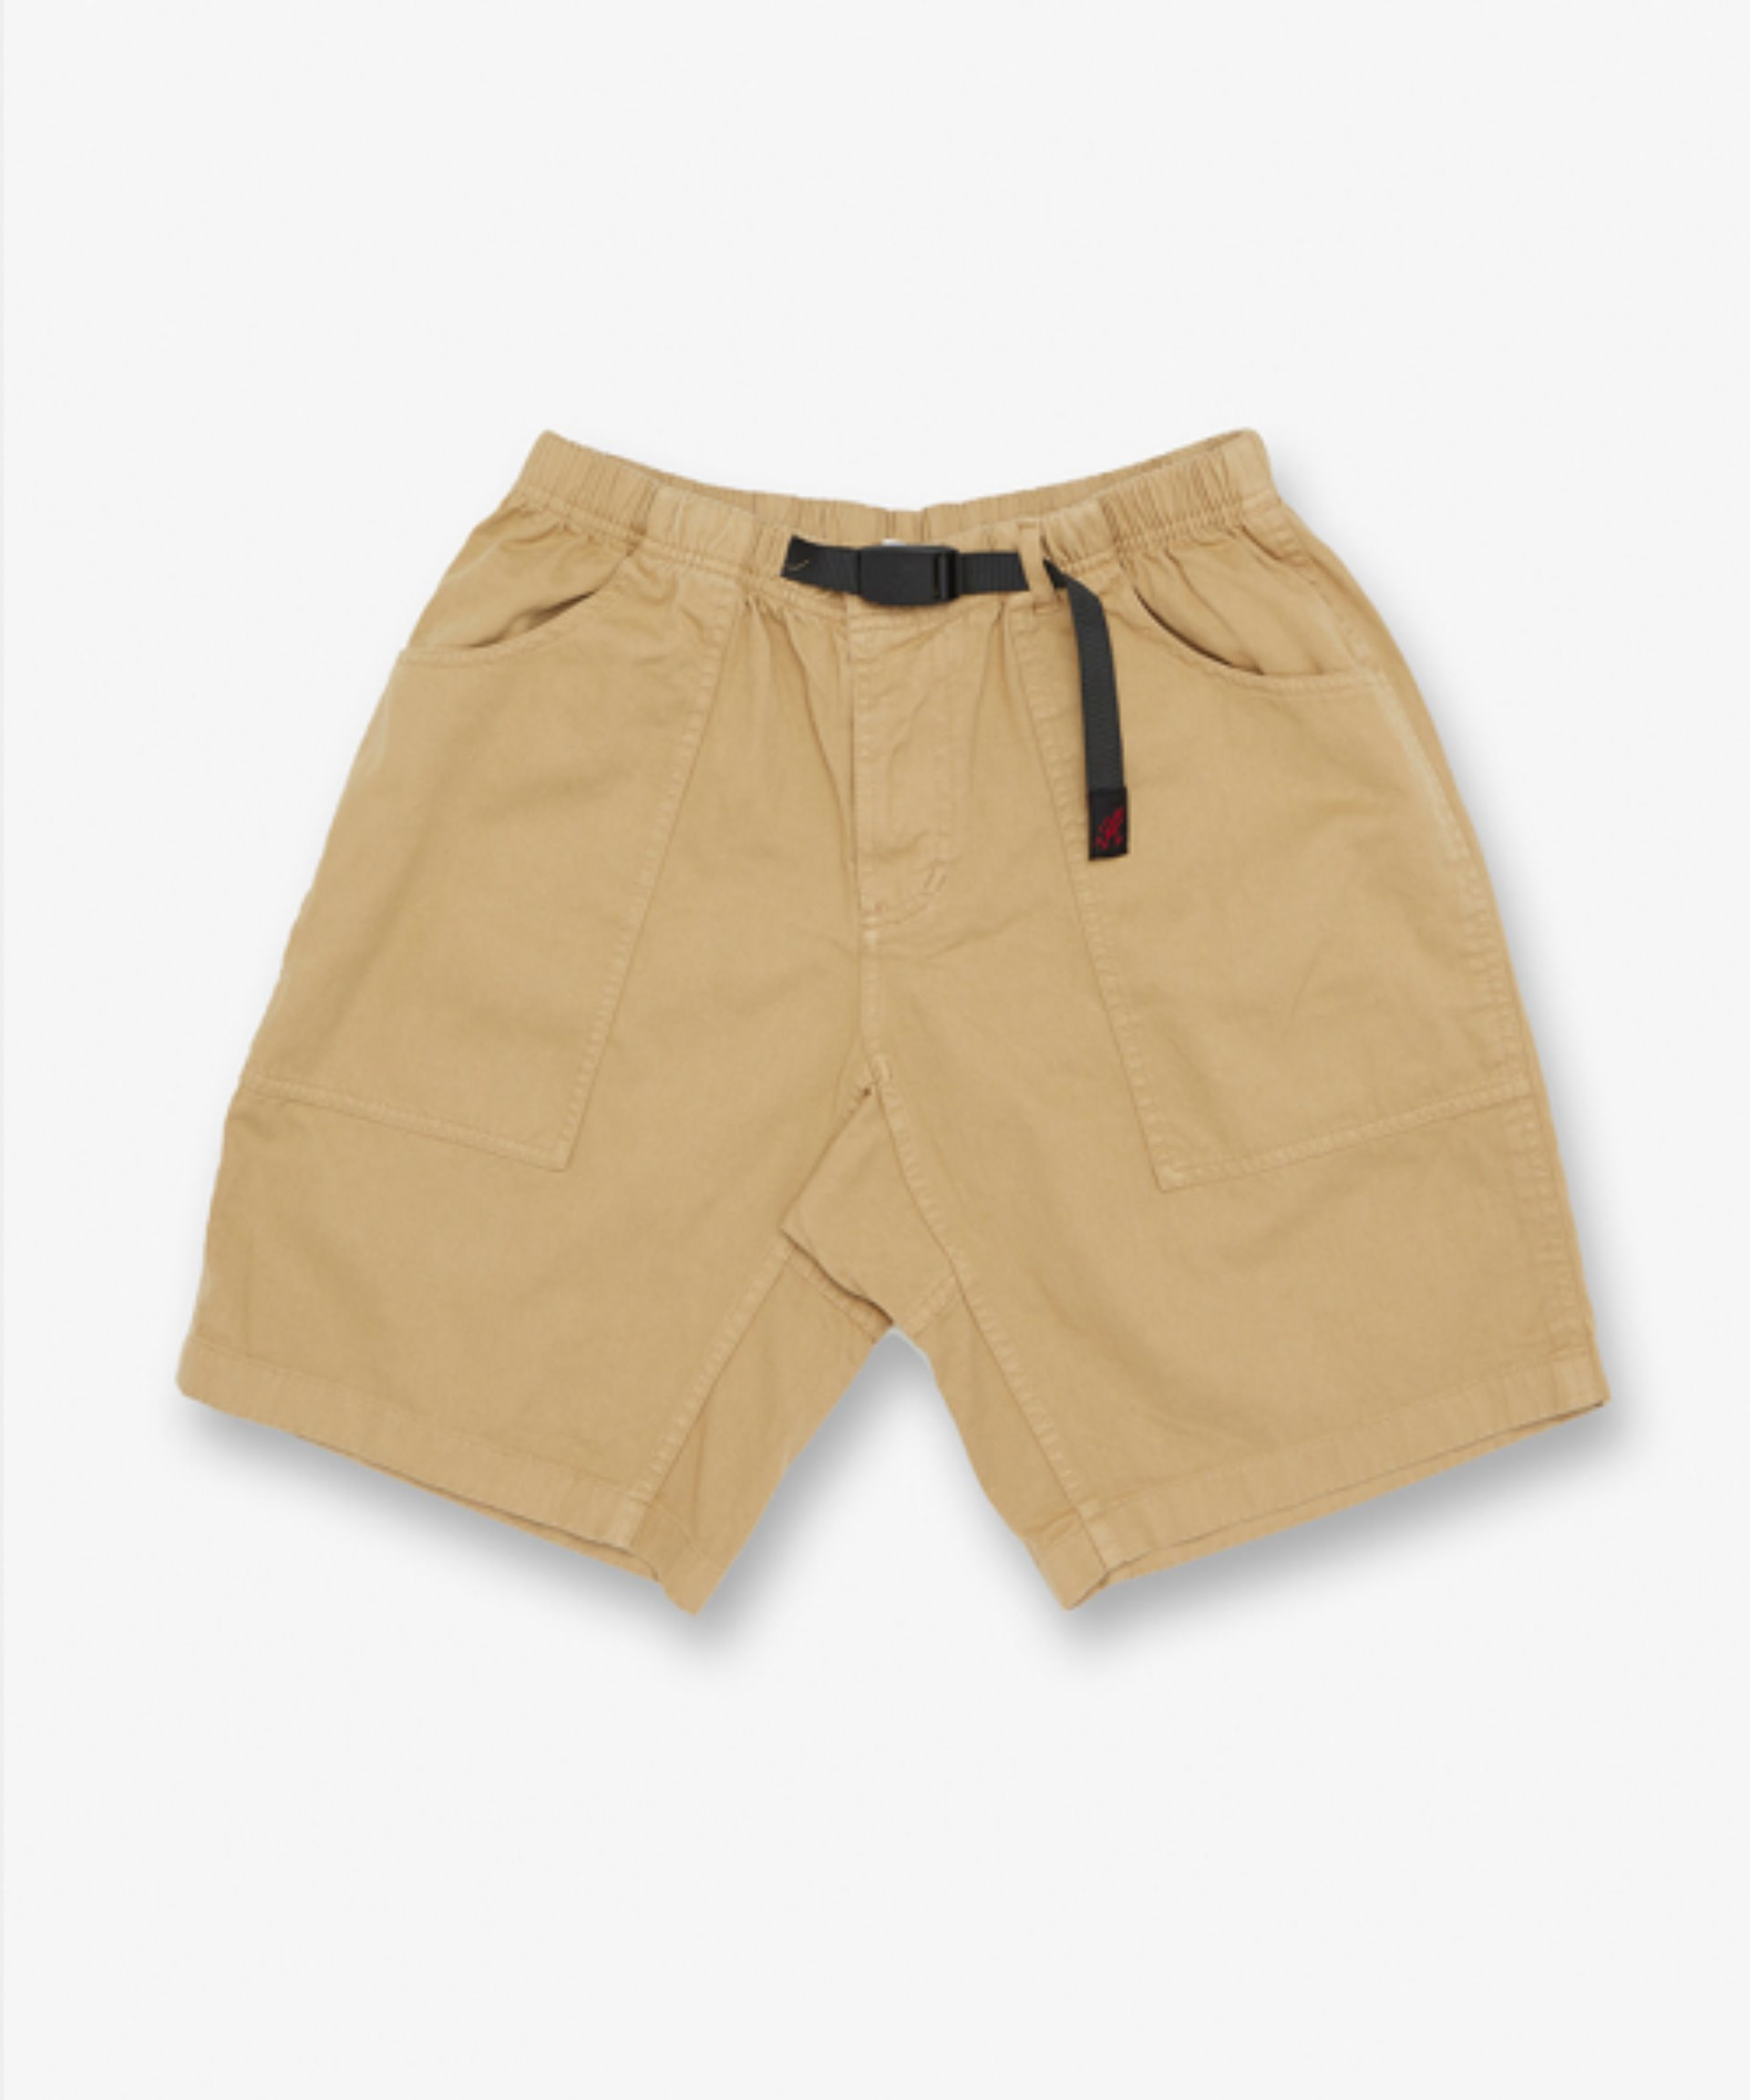 MOUNTAIN SHORTS(CHINO)